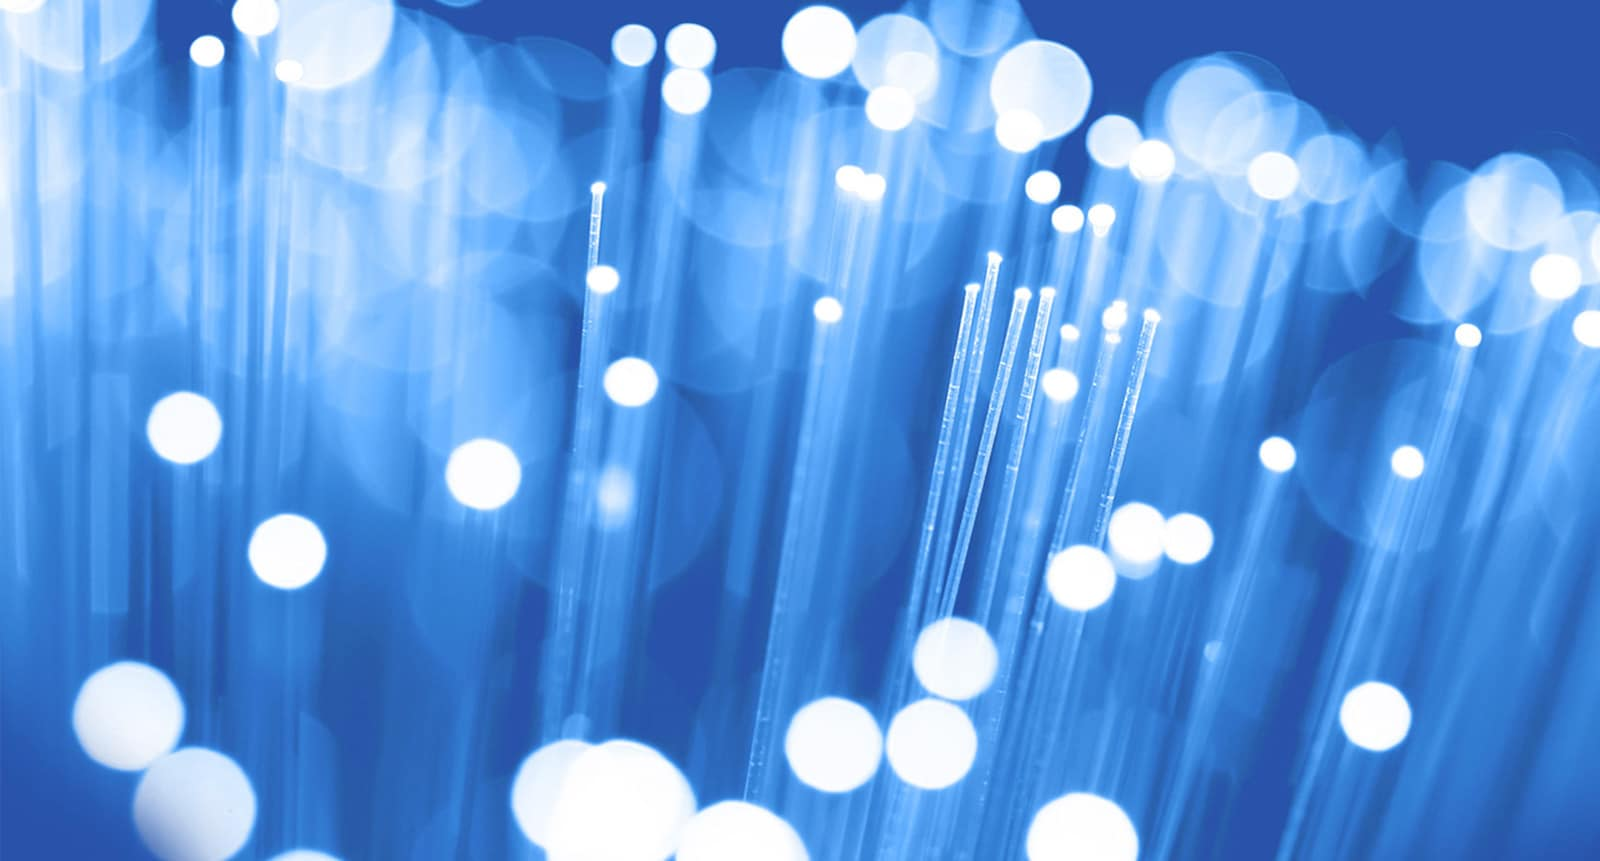 Royal Cabling Services: Fibre Optic Cabling Perth, Fibre Optic Cable Installation, Fibre to the Premises, FTTP